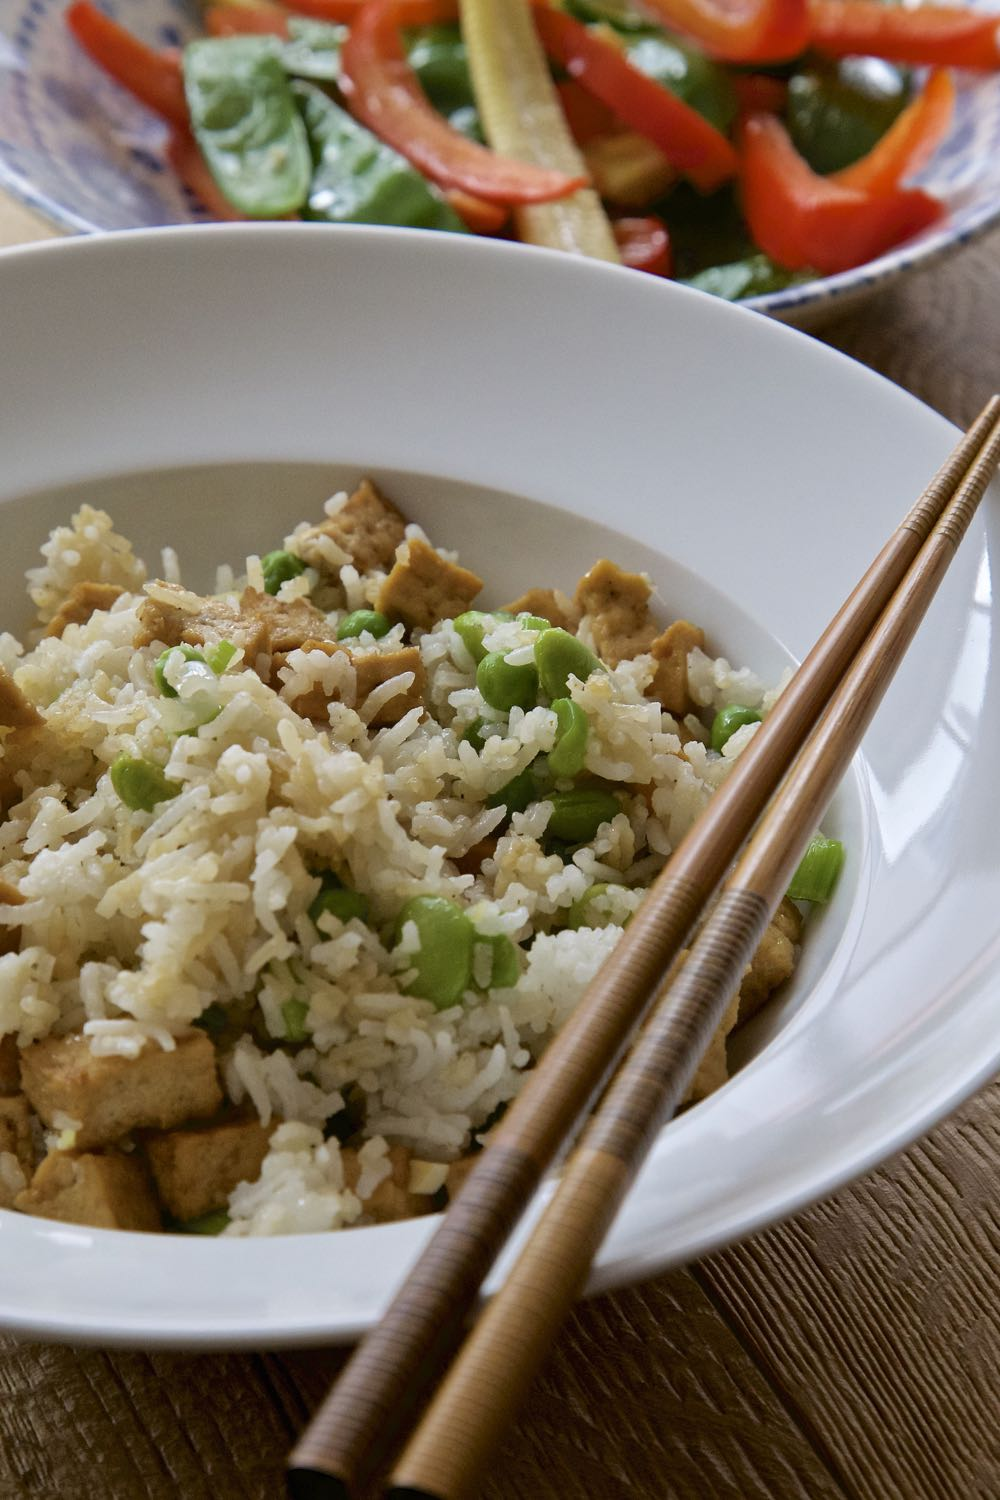 Easy Vegan Egg Fried Rice with Tofu Pieces